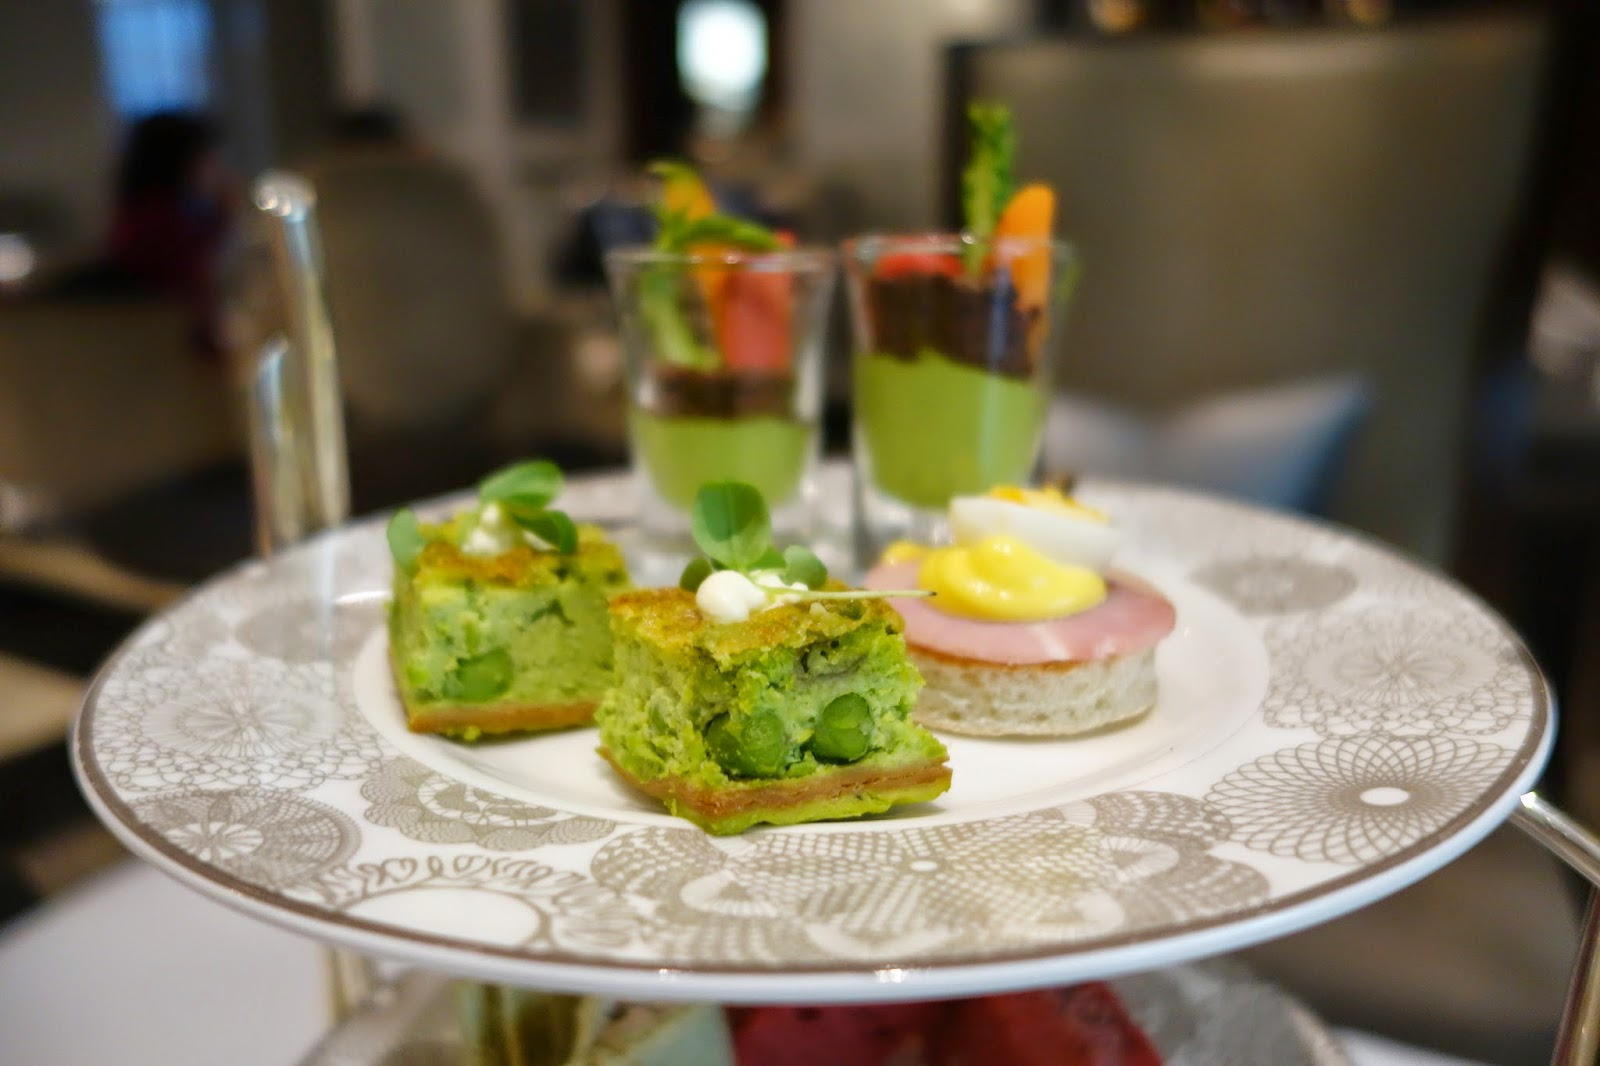 'Edible Garden' Afternoon Tea at the Intercontinental Westminster